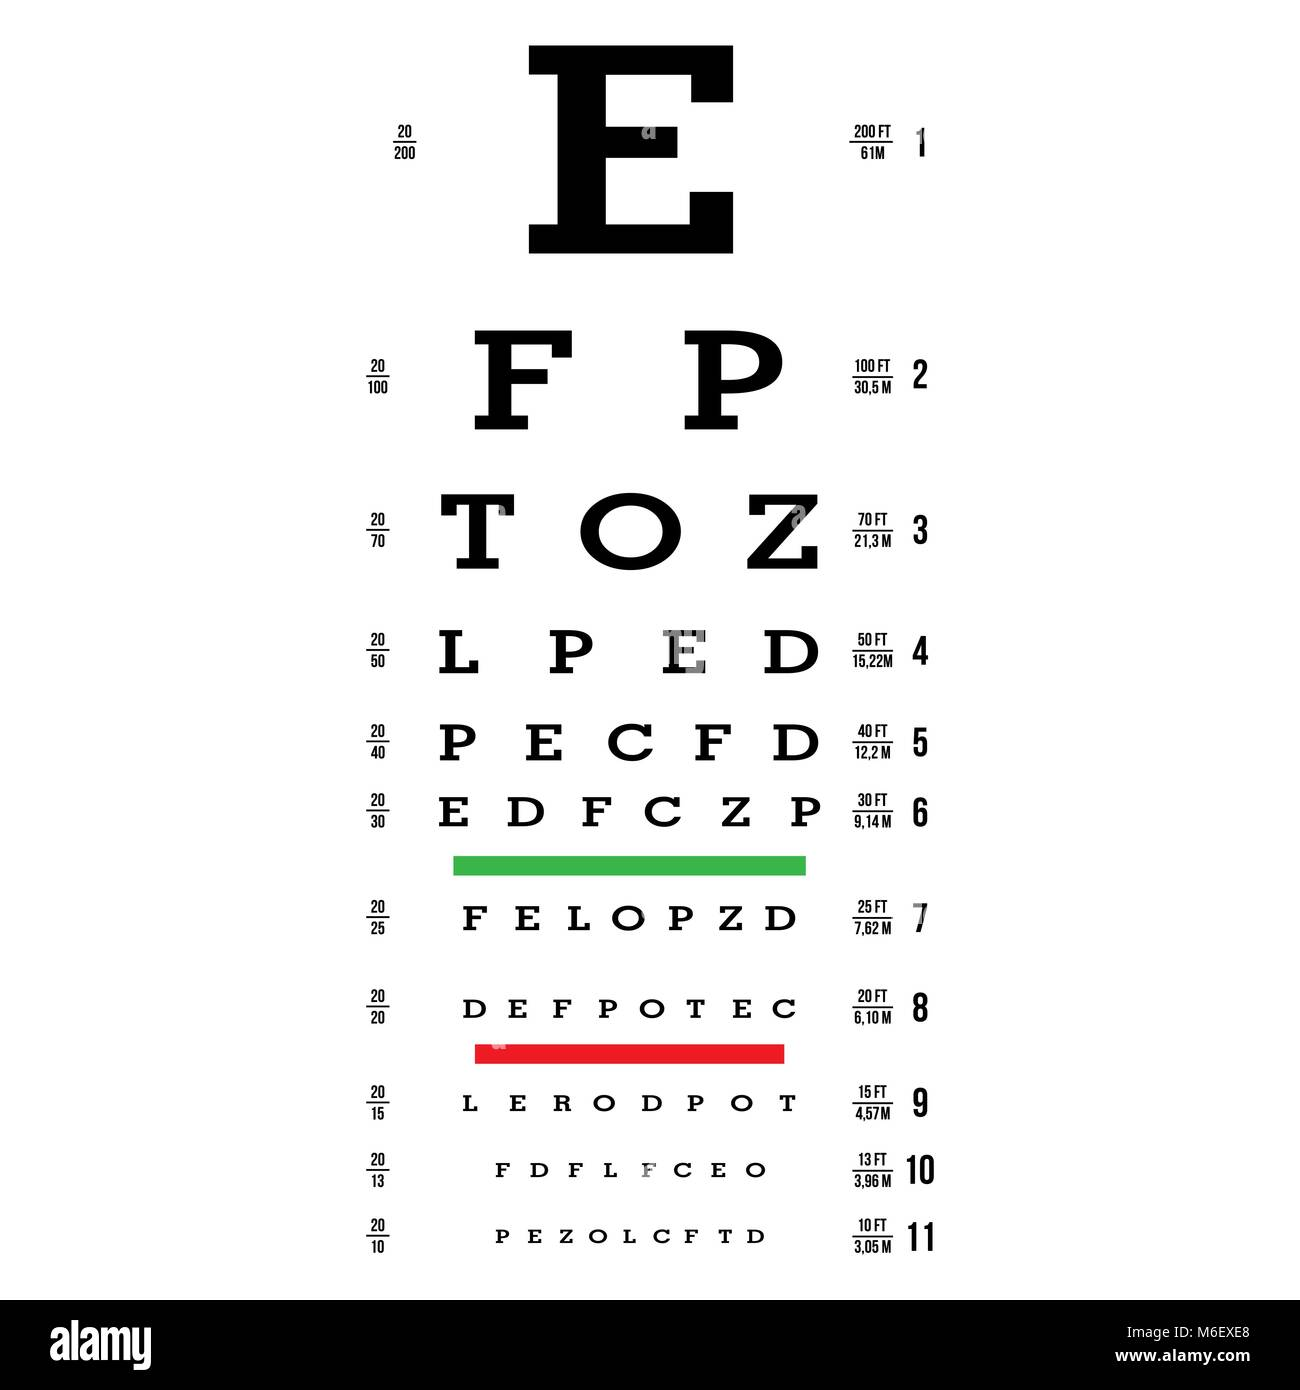 Seeing eye chart images chart design ideas optician letters stock photos optician letters stock images alamy eye test chart vector letters chart vision geenschuldenfo Choice Image